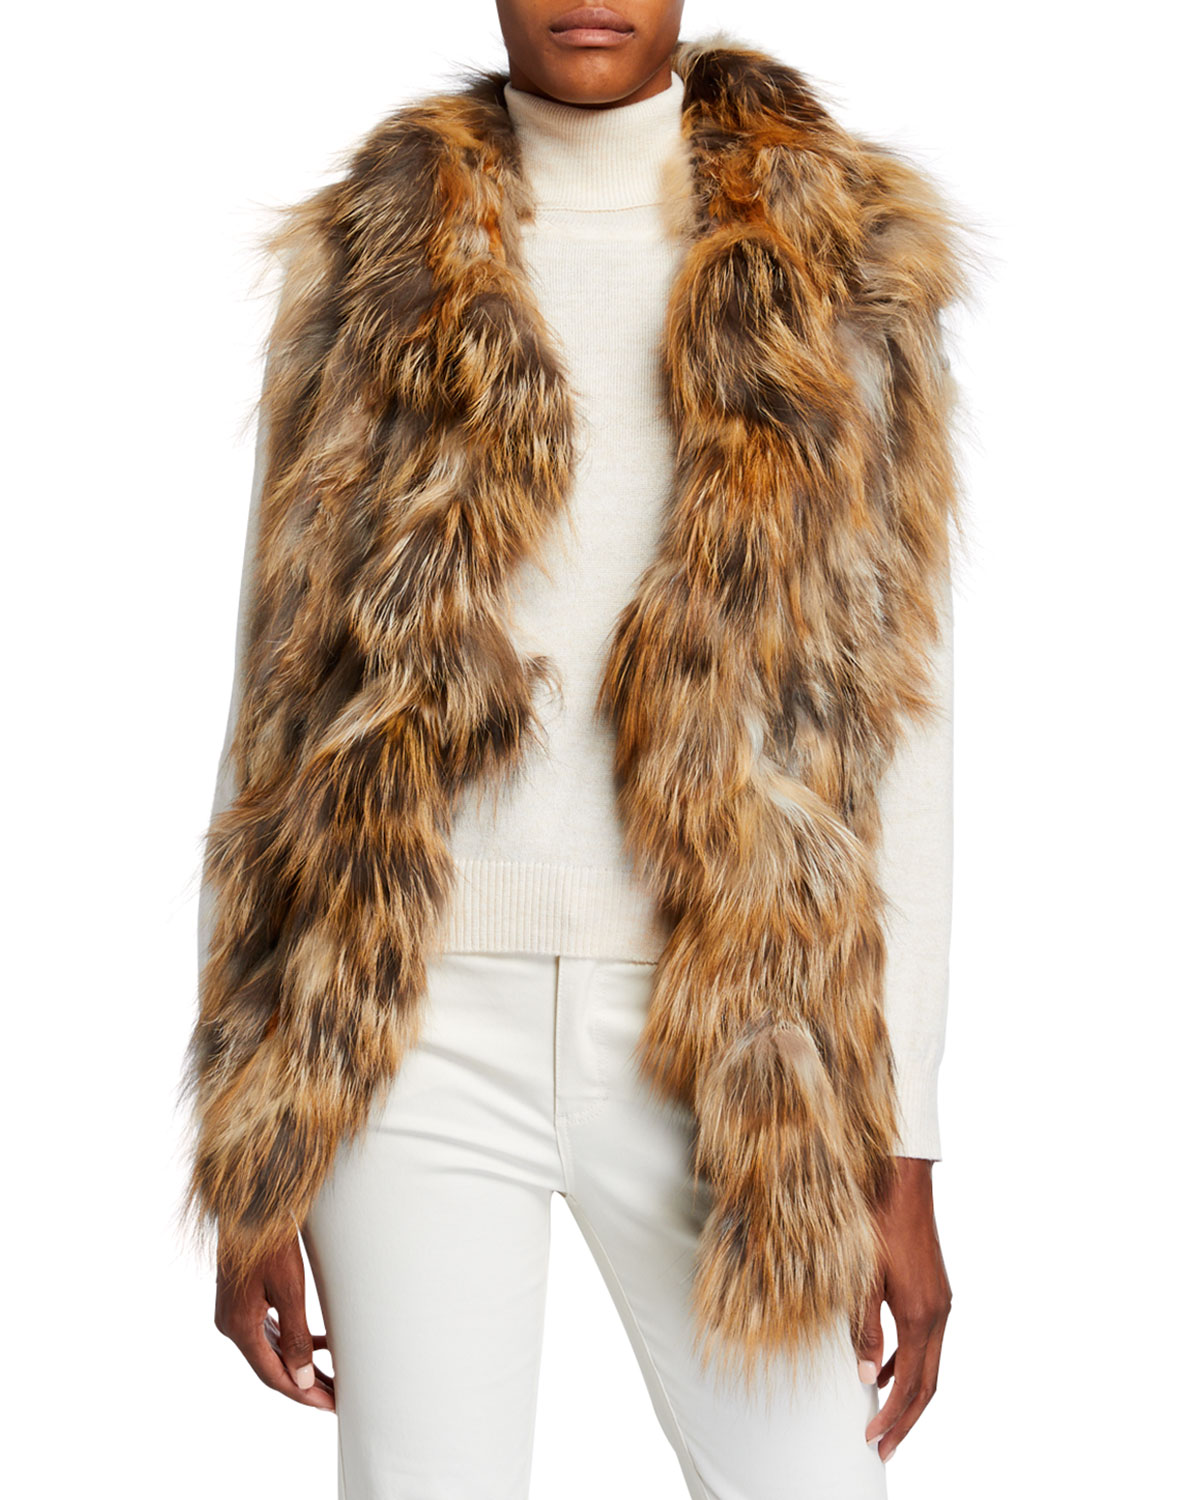 Gorski Accessories S-CUT RUFFLE KNIT FOX FUR STOLE